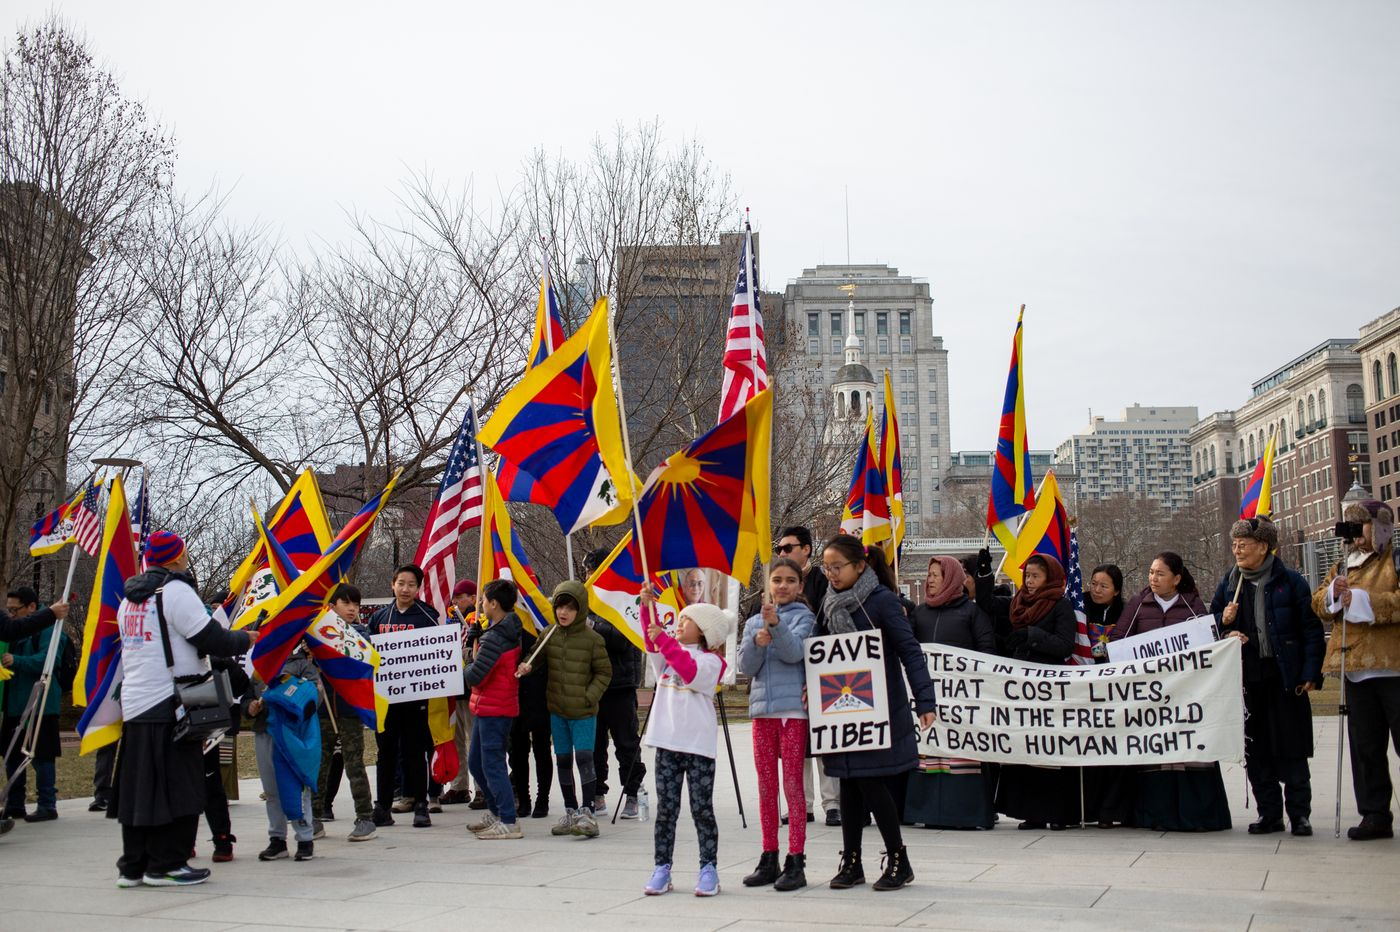 60th Tibet uprising day marked early in North America